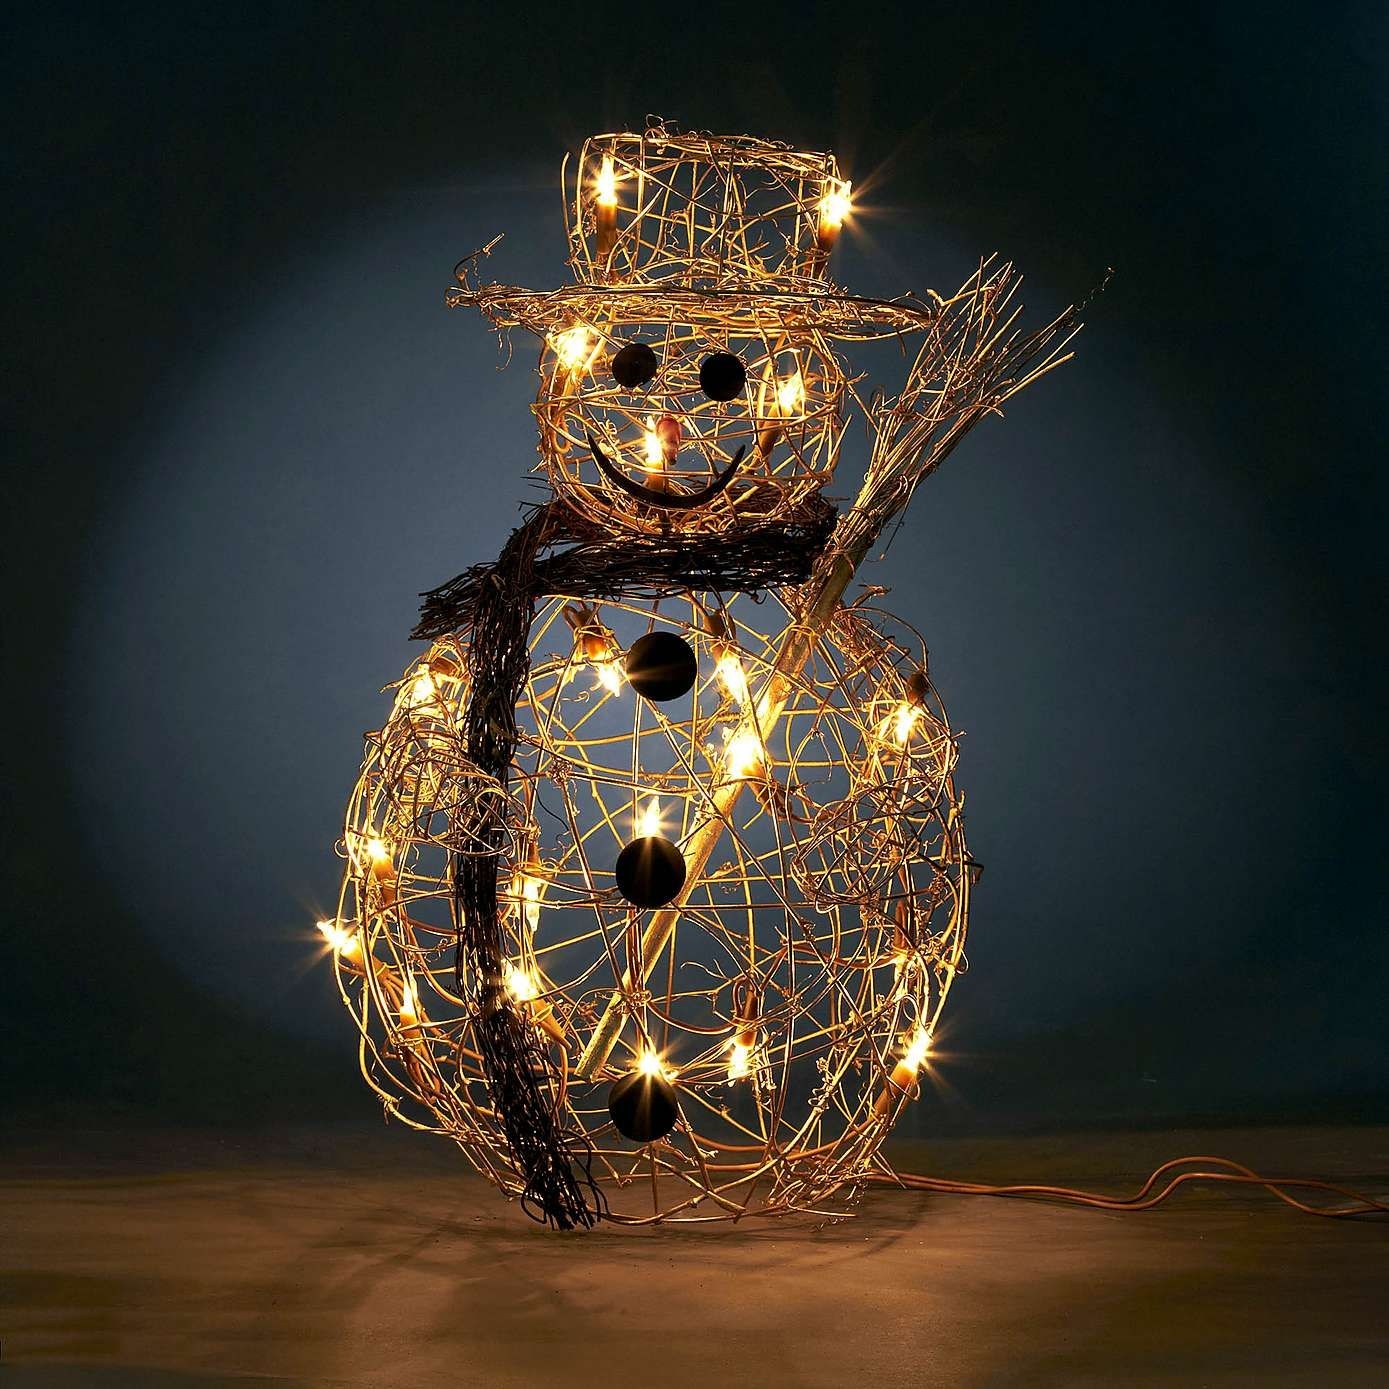 Christmas LED Light Up Snowman | Dunelm & Christmas LED Light Up Snowman | Dunelm | Christmas decorations ... azcodes.com